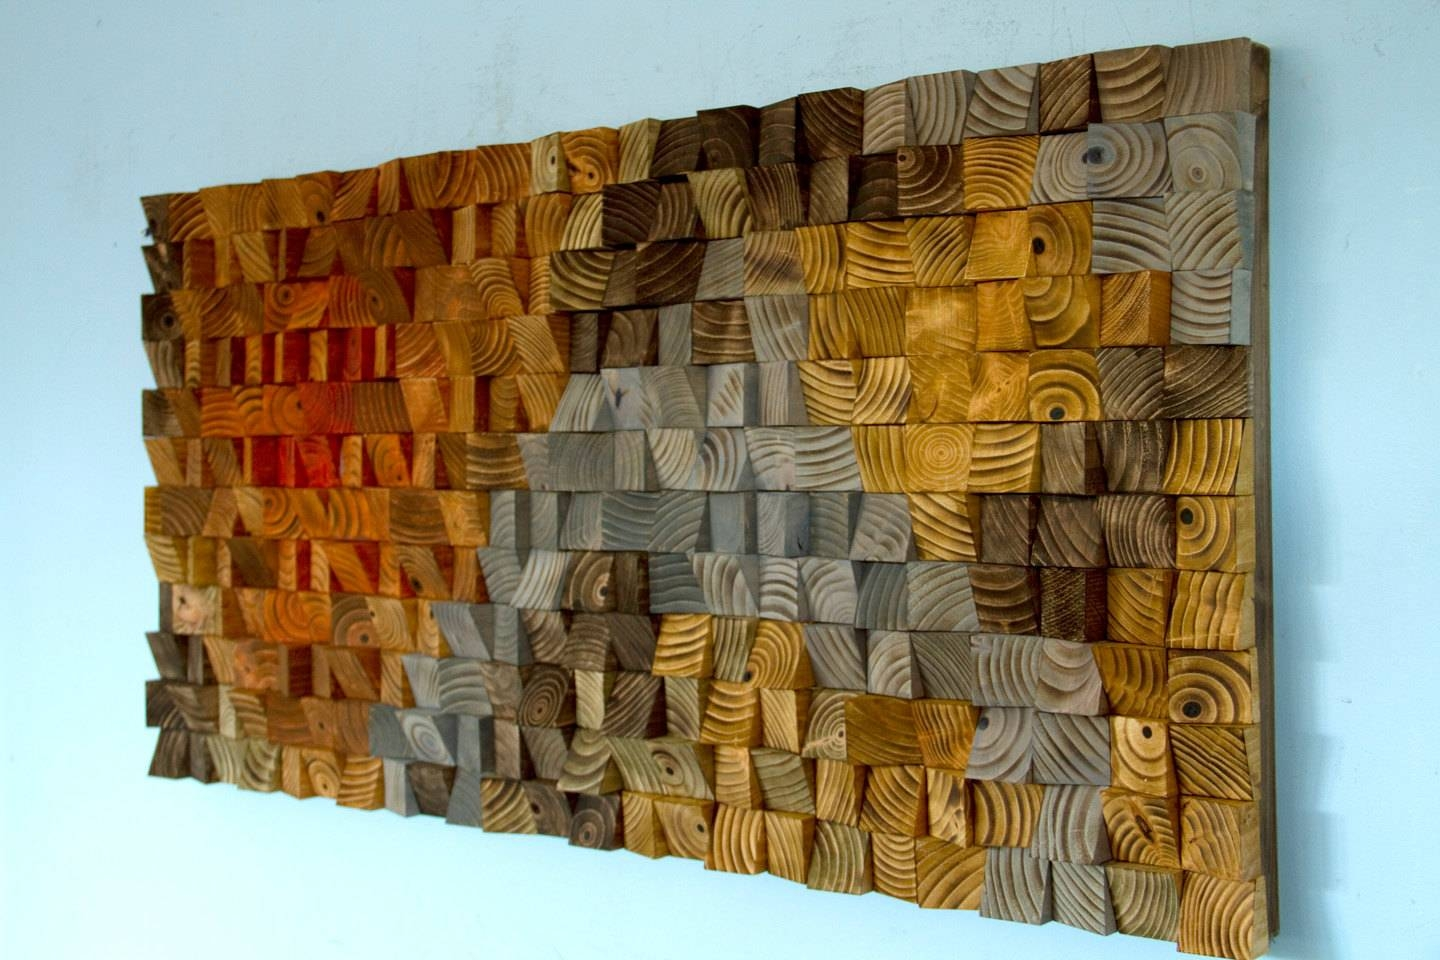 Rustic Wood Wall Art Wood Wall Sculpture Abstract Wood Art Within Latest Wall Art On Wood (View 8 of 20)